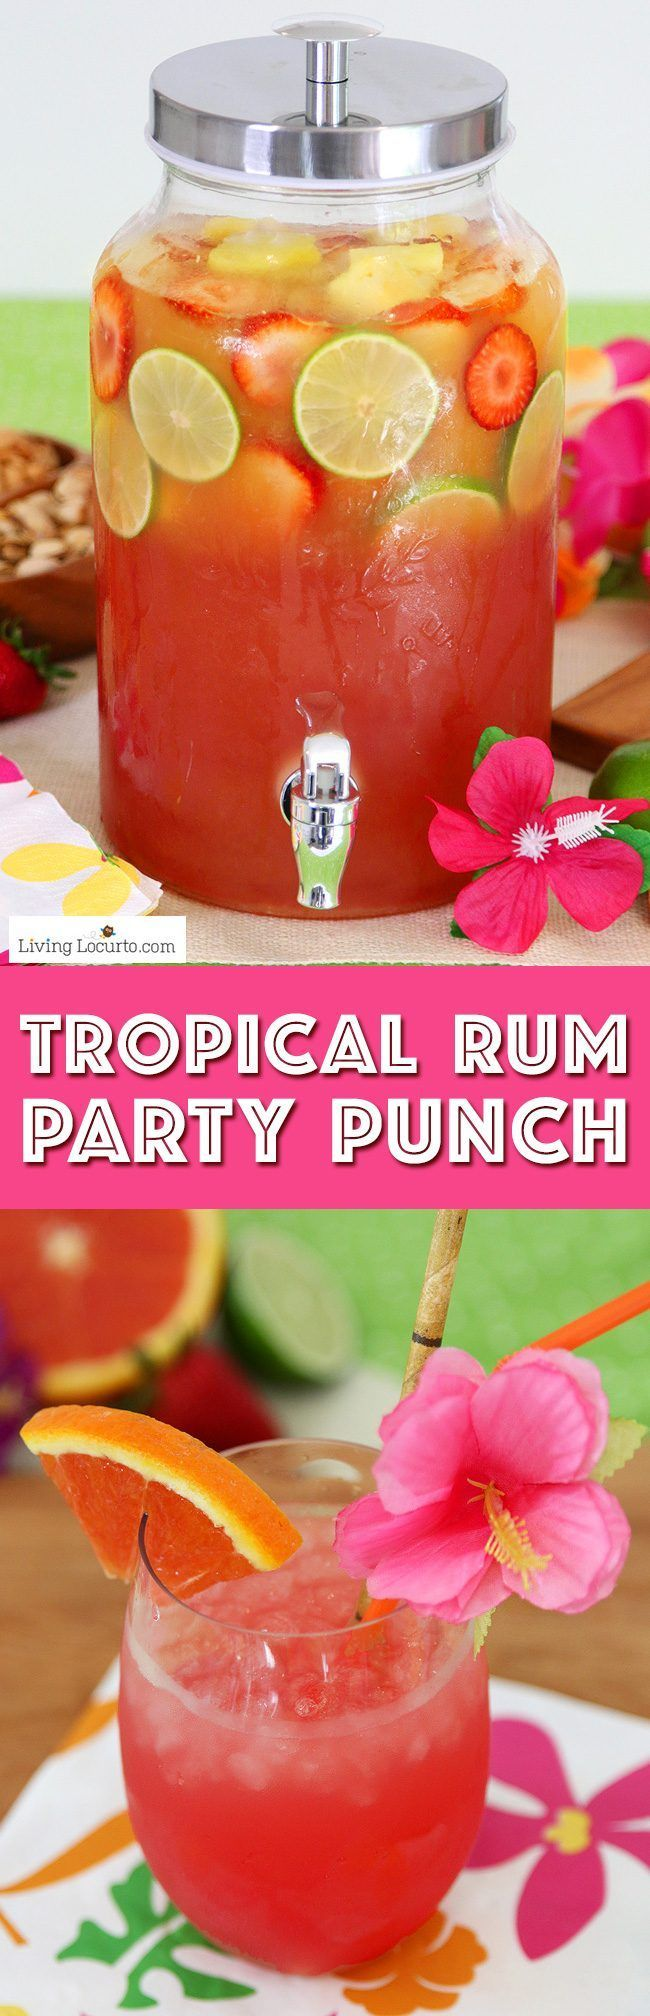 Summer Luau Party Ideas! Tropical rum punch is a delicious summer cocktail recipe for a luau party or to sip by the pool! A mix of juice and coconut rum for a pretty layered drink. (pool drinks)